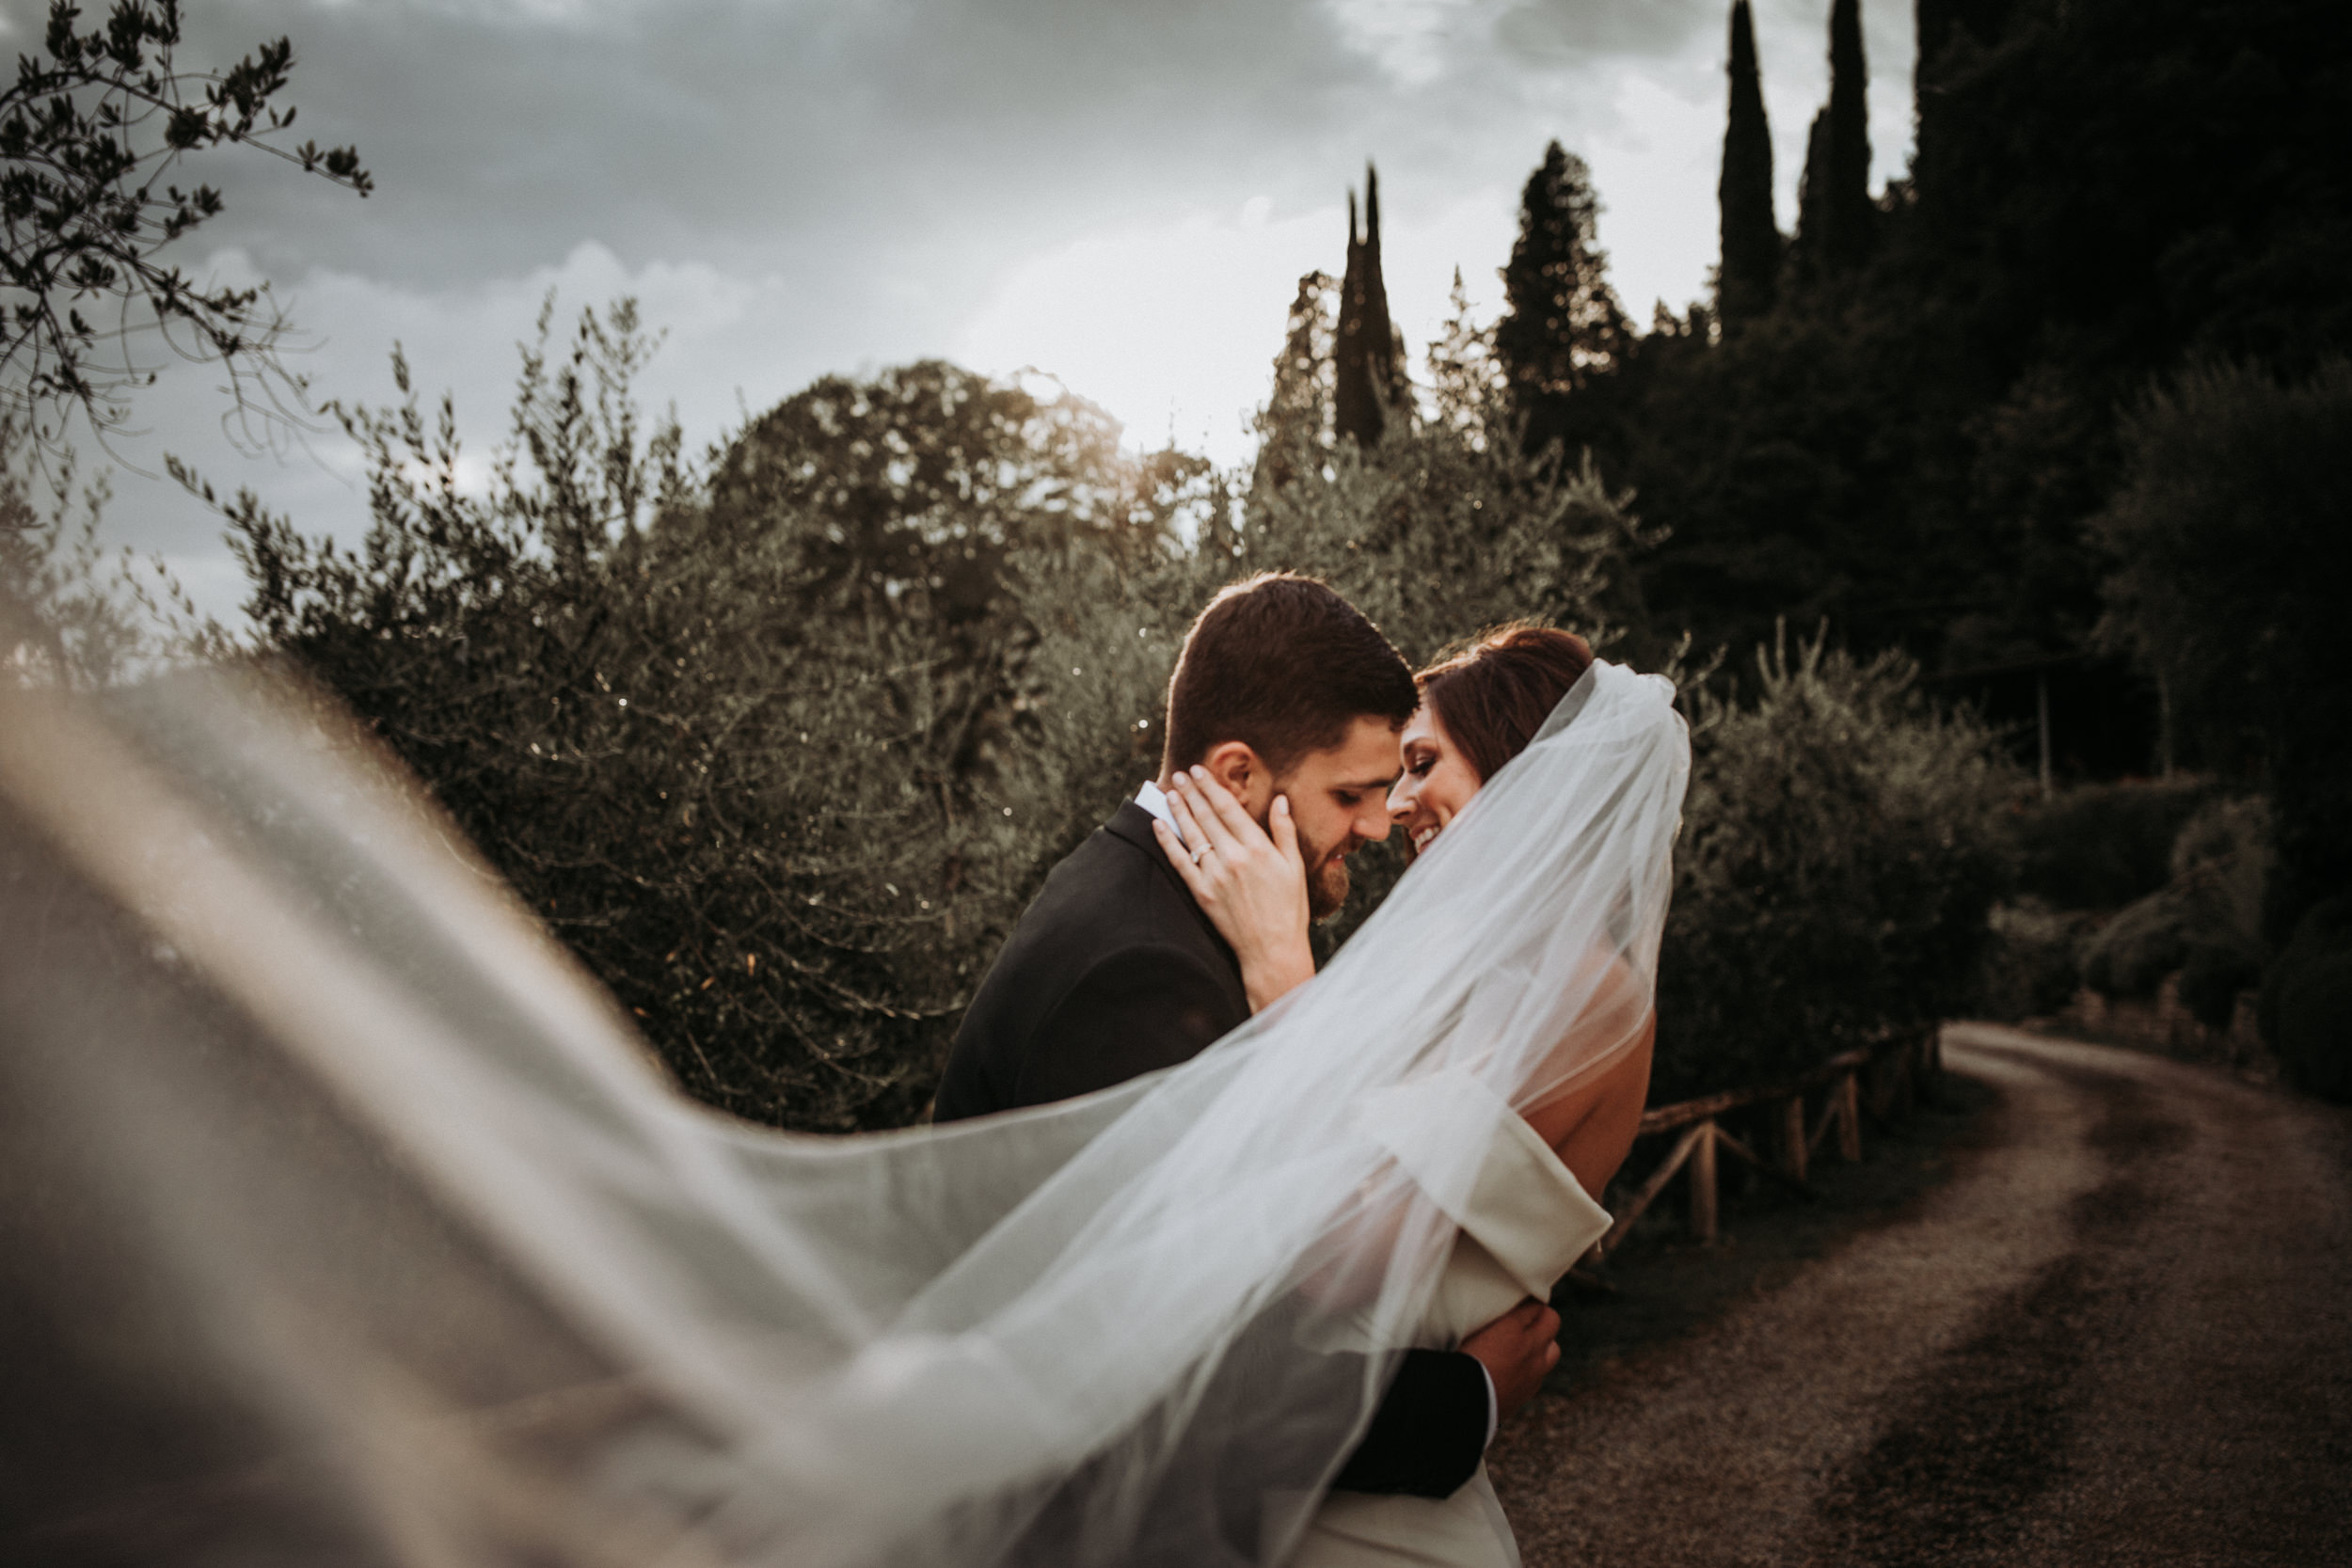 dm_photography_KW_Tuscanyweddingday_306